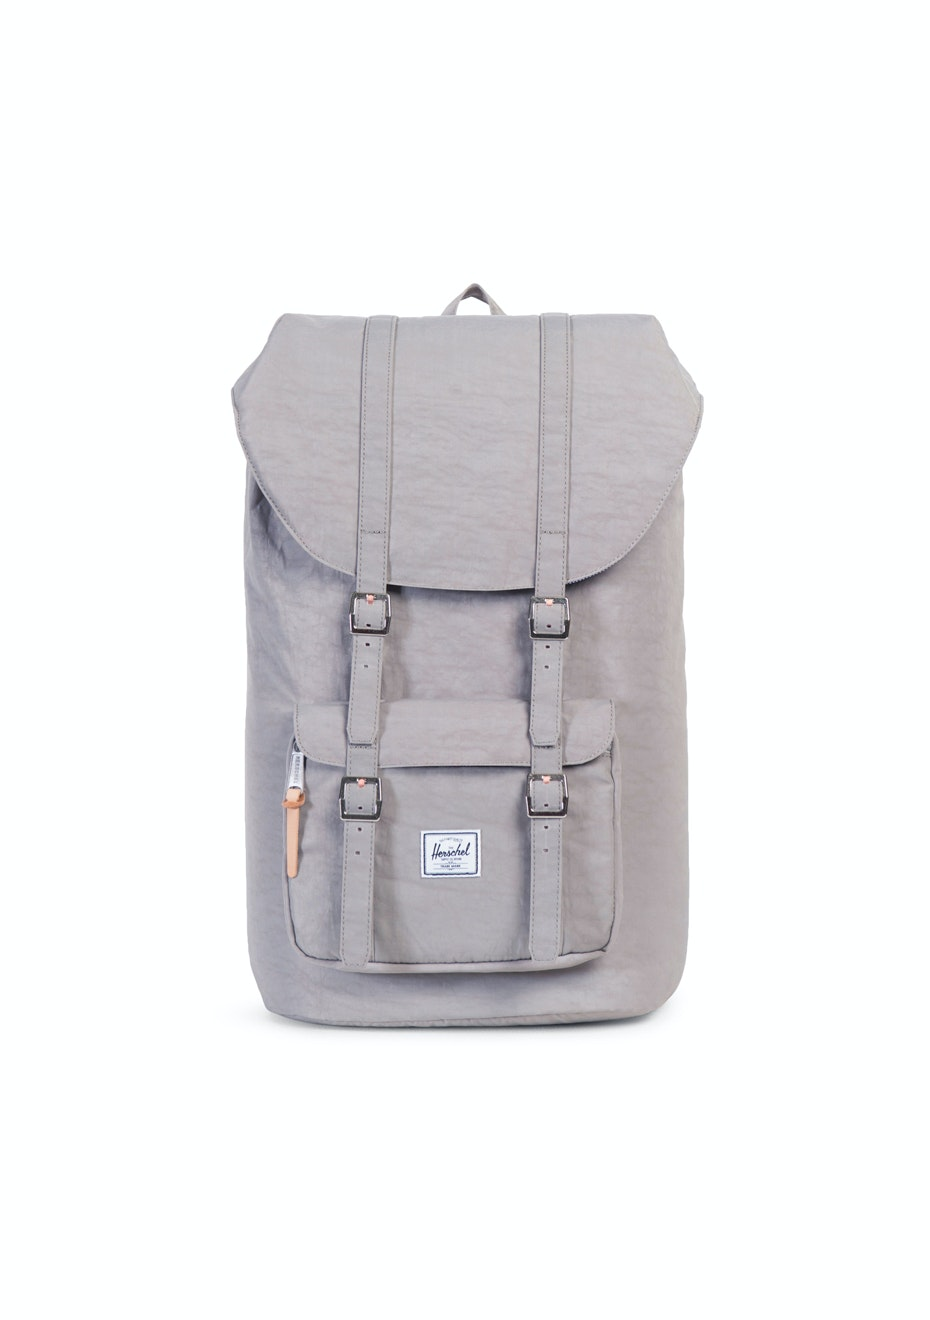 Herschel Supply Co - Little America - Agate Grey/Raw Veggie Tan Leather